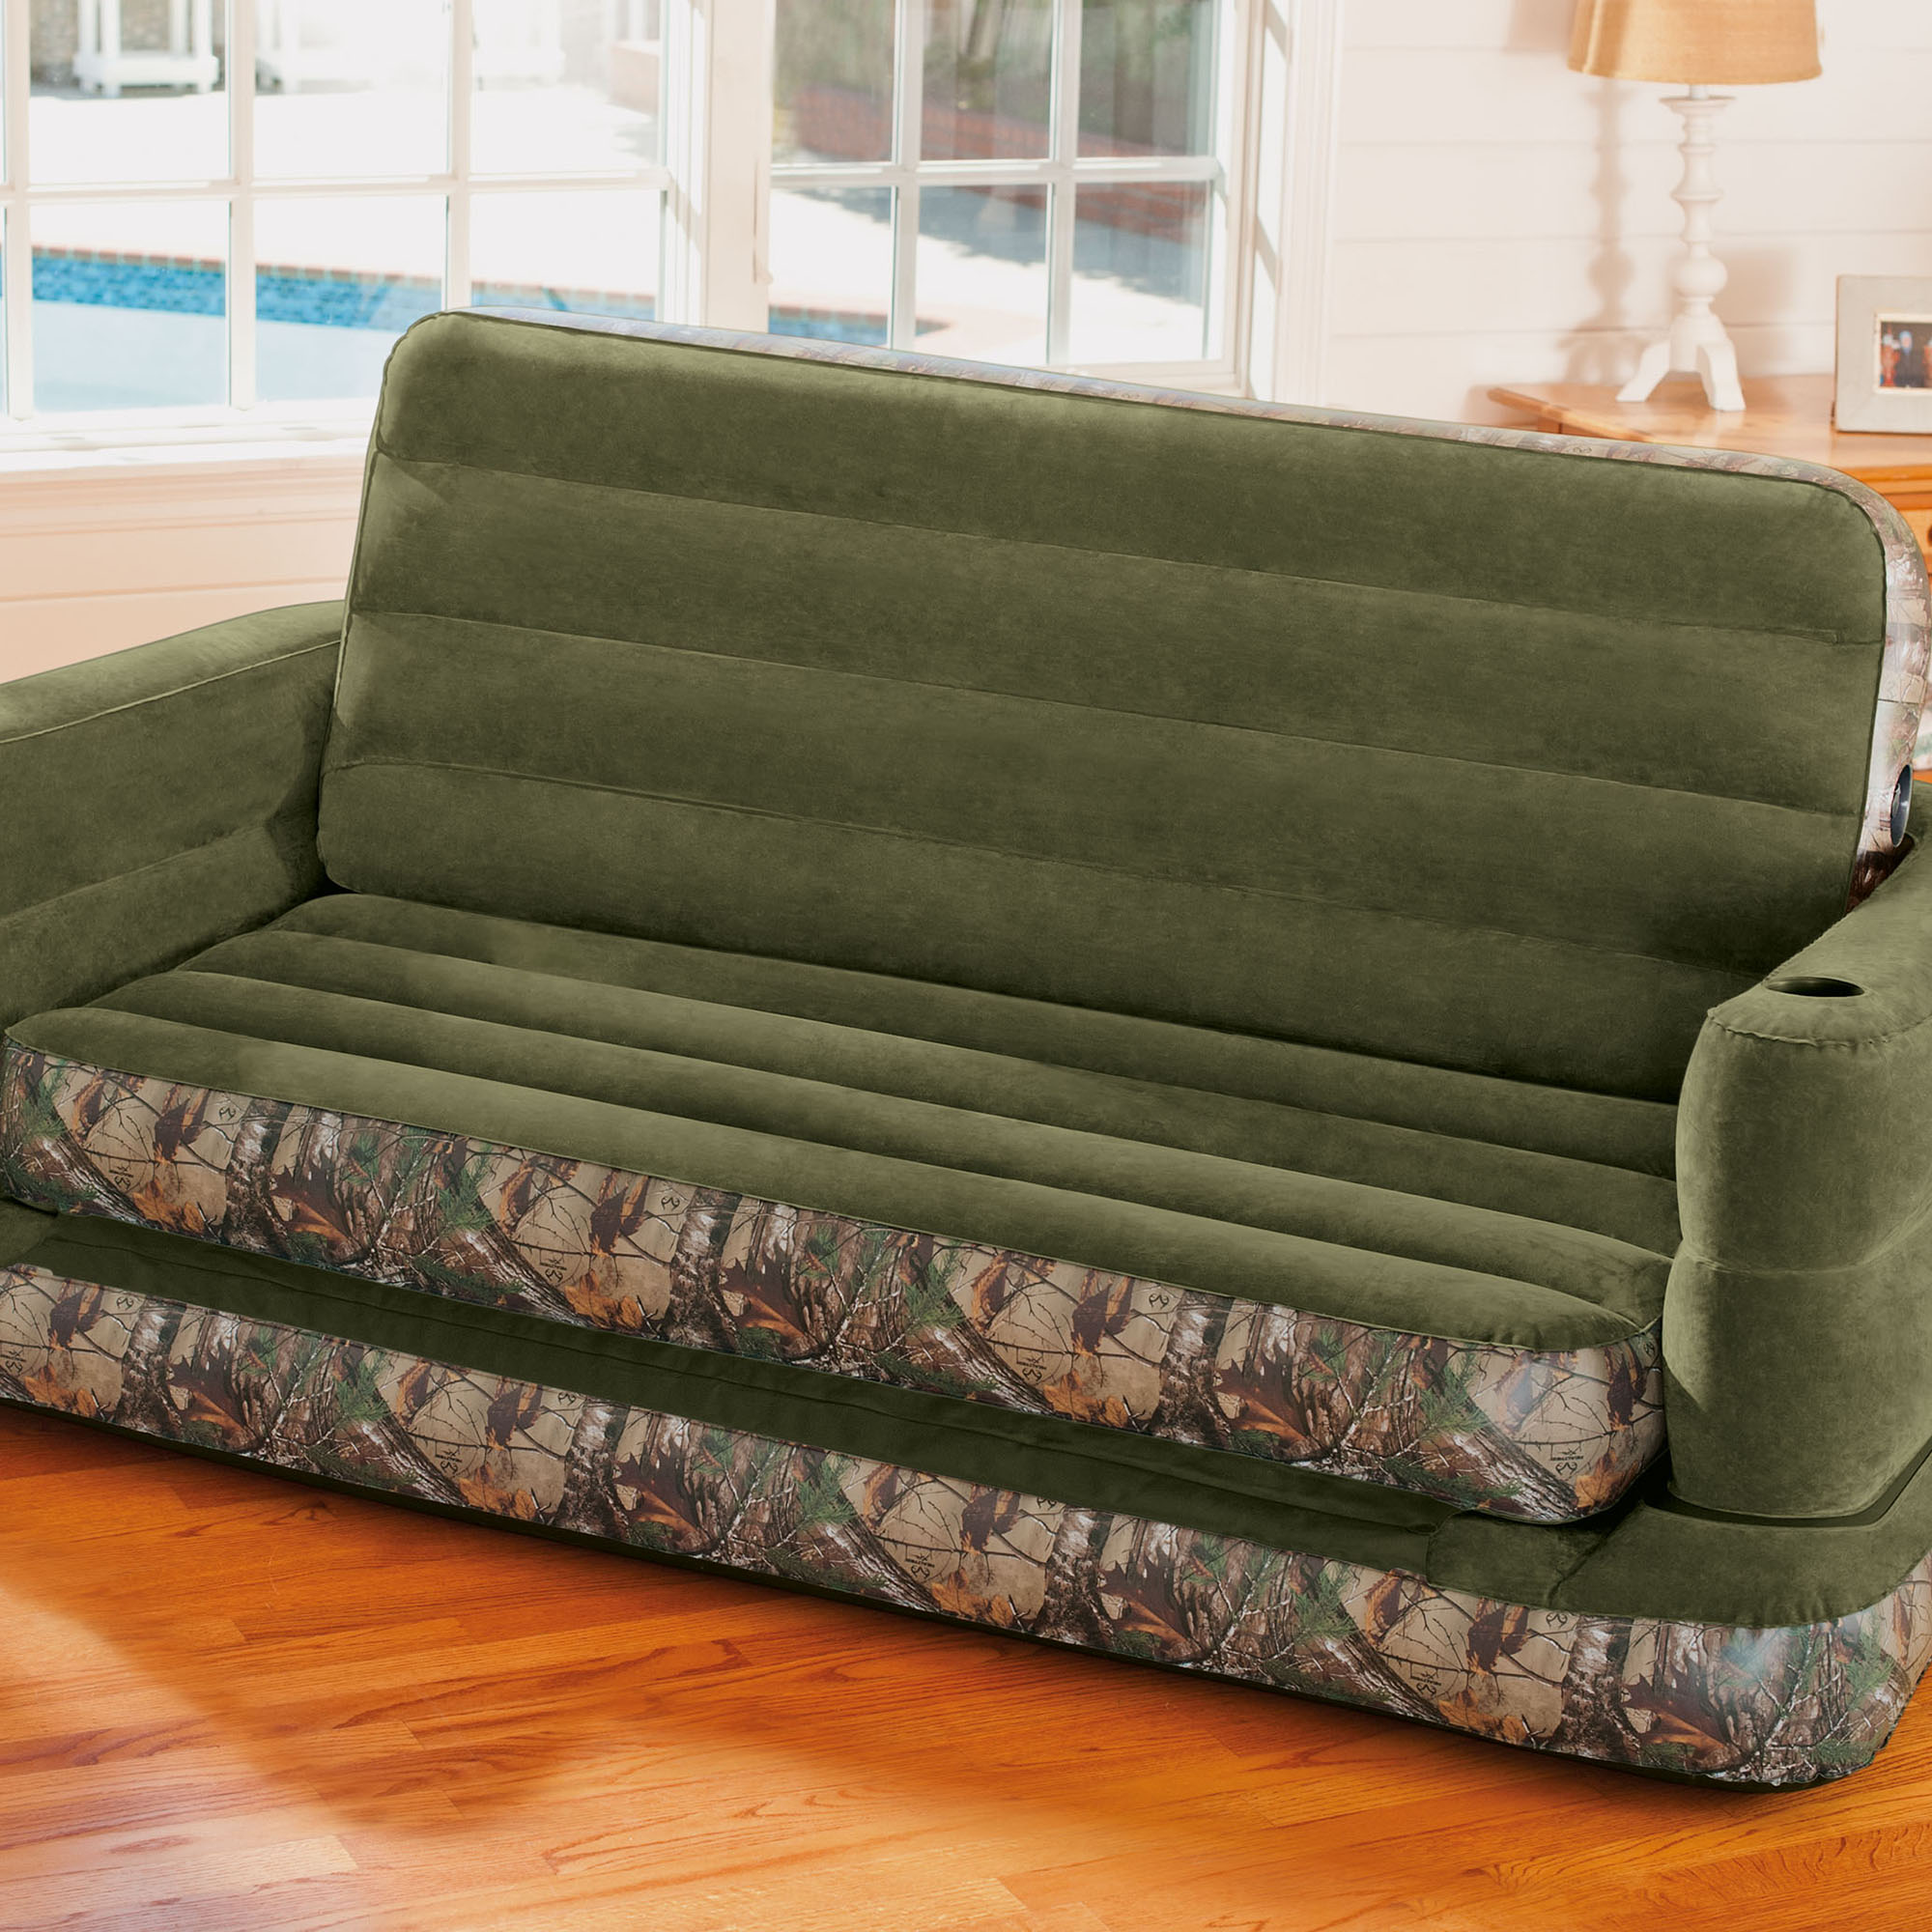 Inflatable Sleeper Sofa Bed: Intex Inflatable RealTree Camo Print Queen Size Pull-Out